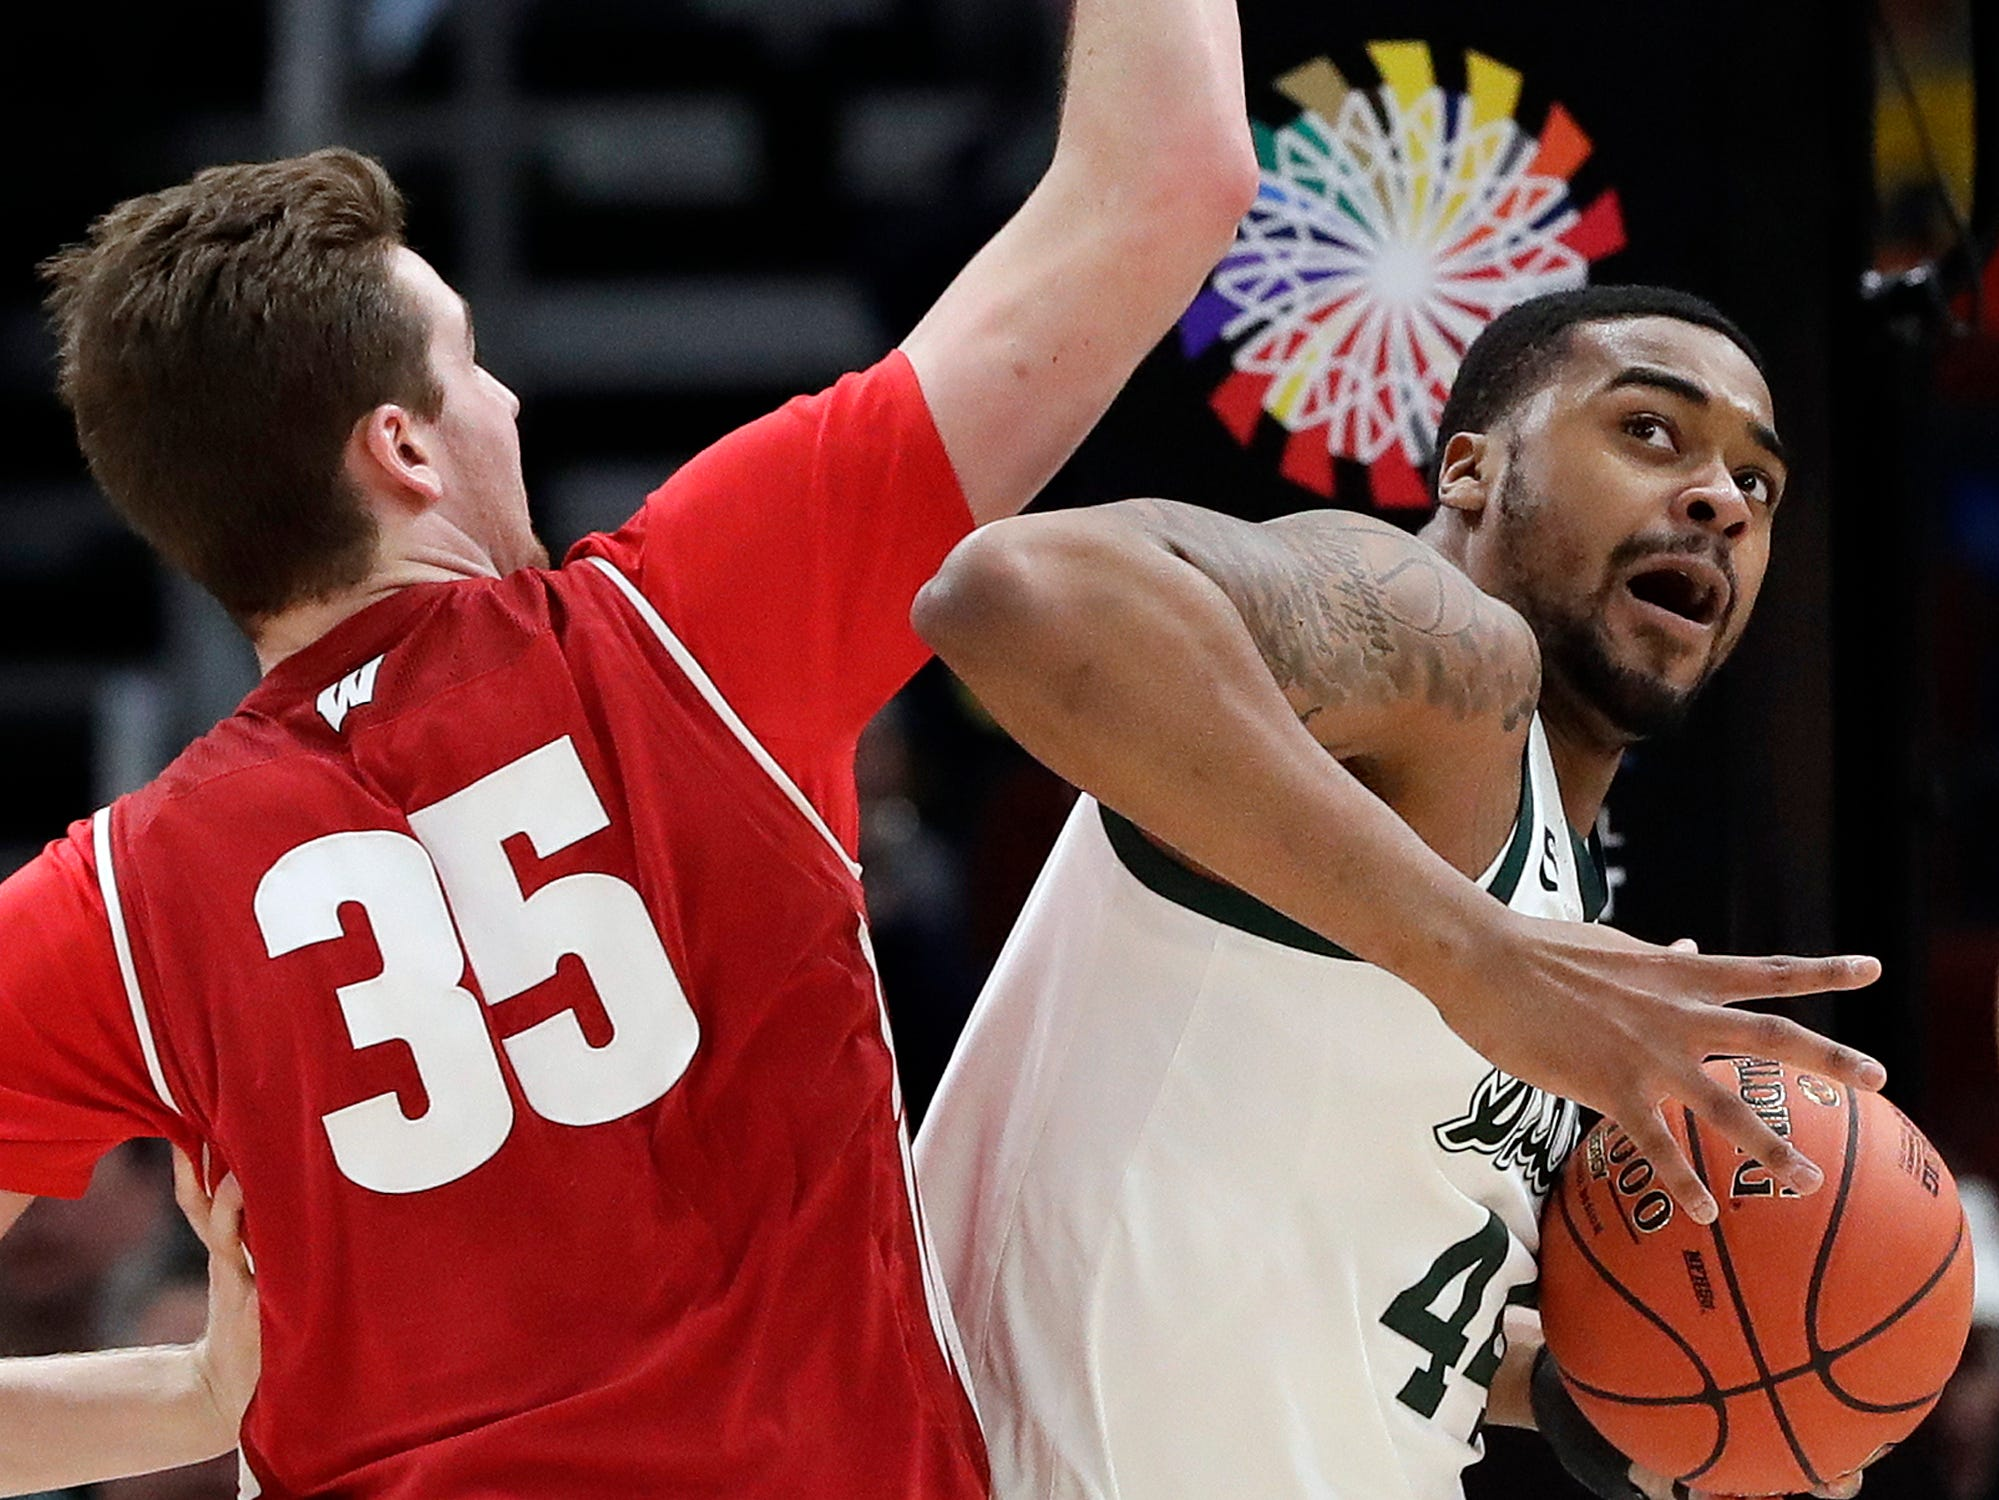 Michigan State's Nick Ward (44) drives against Wisconsin's Nate Reuvers (35) during the first half of an NCAA college basketball game in the semifinals of the Big Ten Conference tournament, Saturday, March 16, 2019, in Chicago.